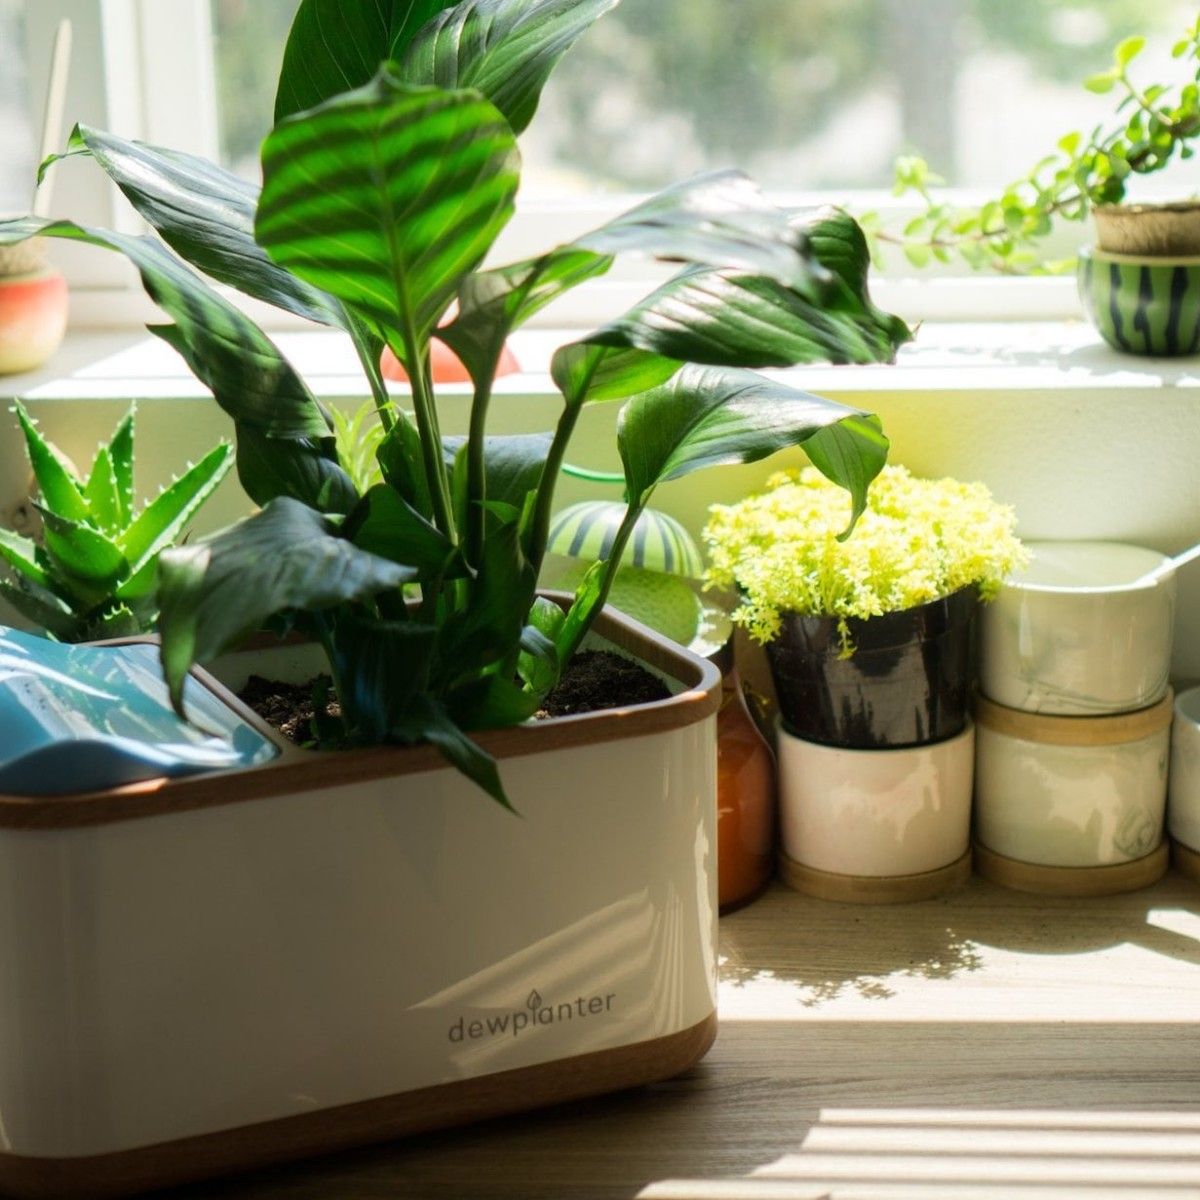 Dewplanter Water-Generating Planter uses condensation to hydrate your plants